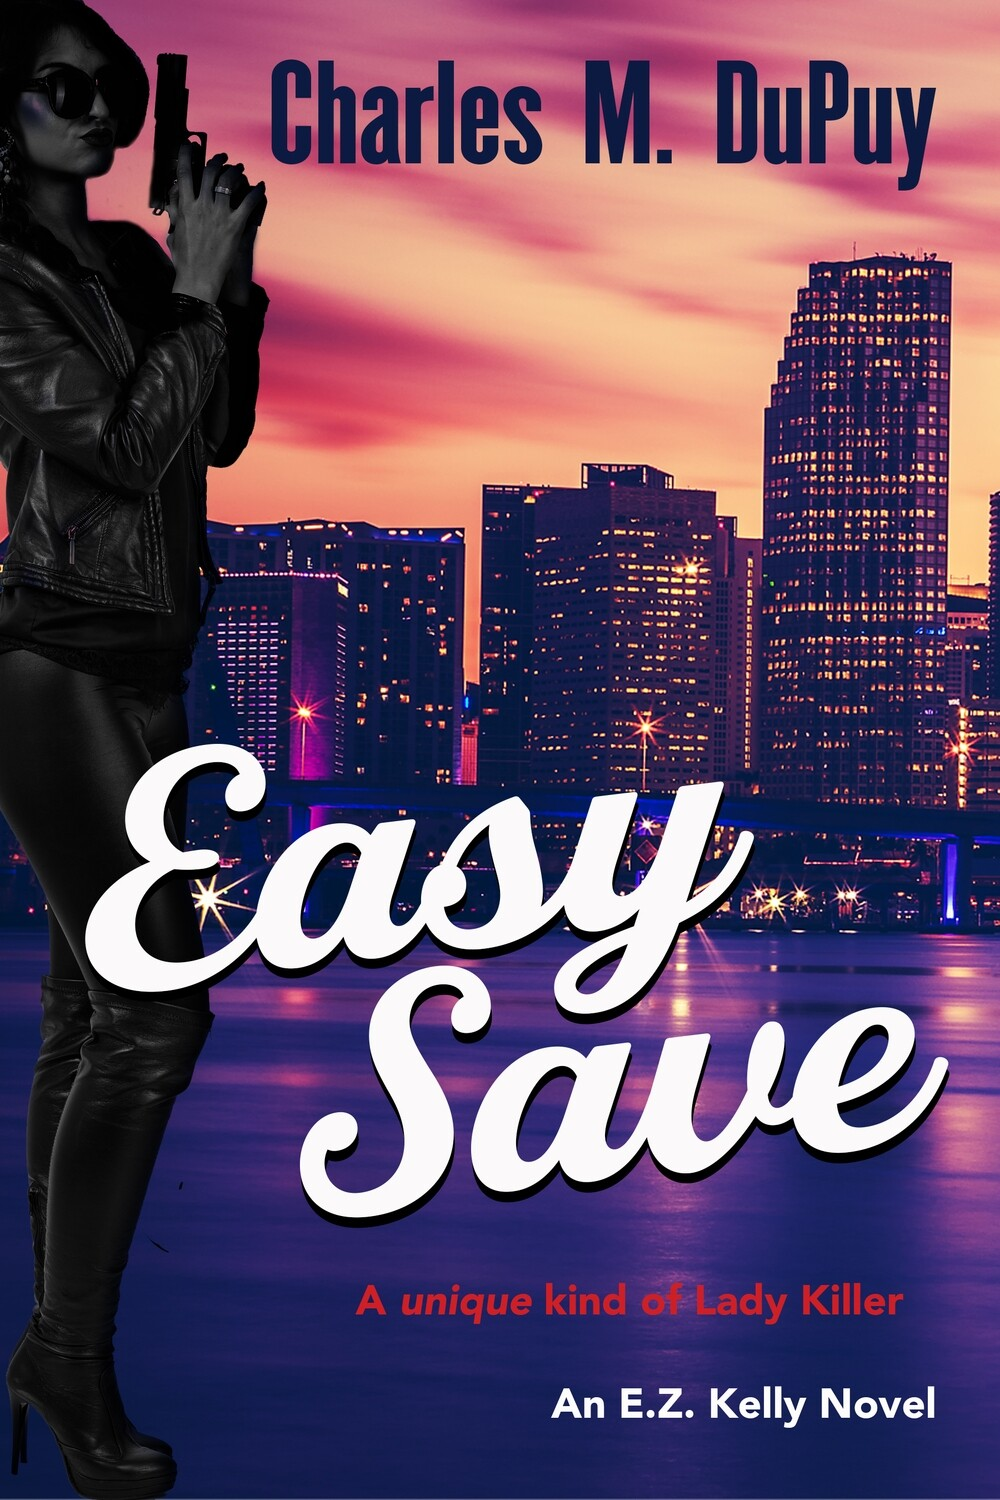 PRE-ORDER: Easy Save by Charles M. DuPuy